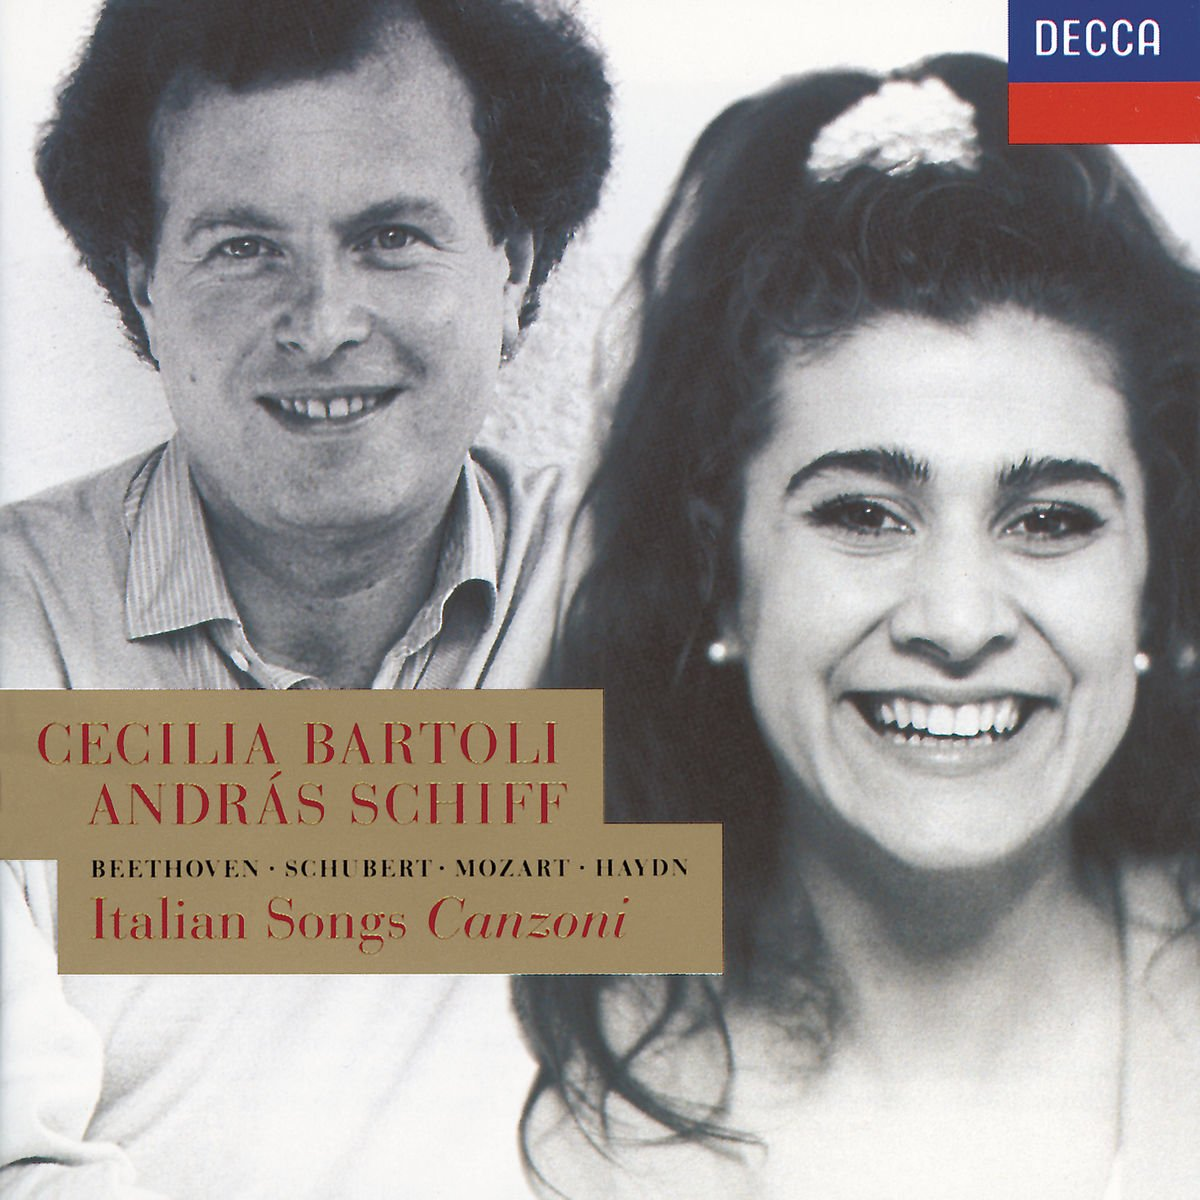 Download image 1700s woman portrait pc android iphone and ipad - Ludwig Van Beethoven Cecilia Bartoli Andr S Schiff Cecilia Bartoli The Impatient Lover Italian Songs By Beethoven Schubert Mozart